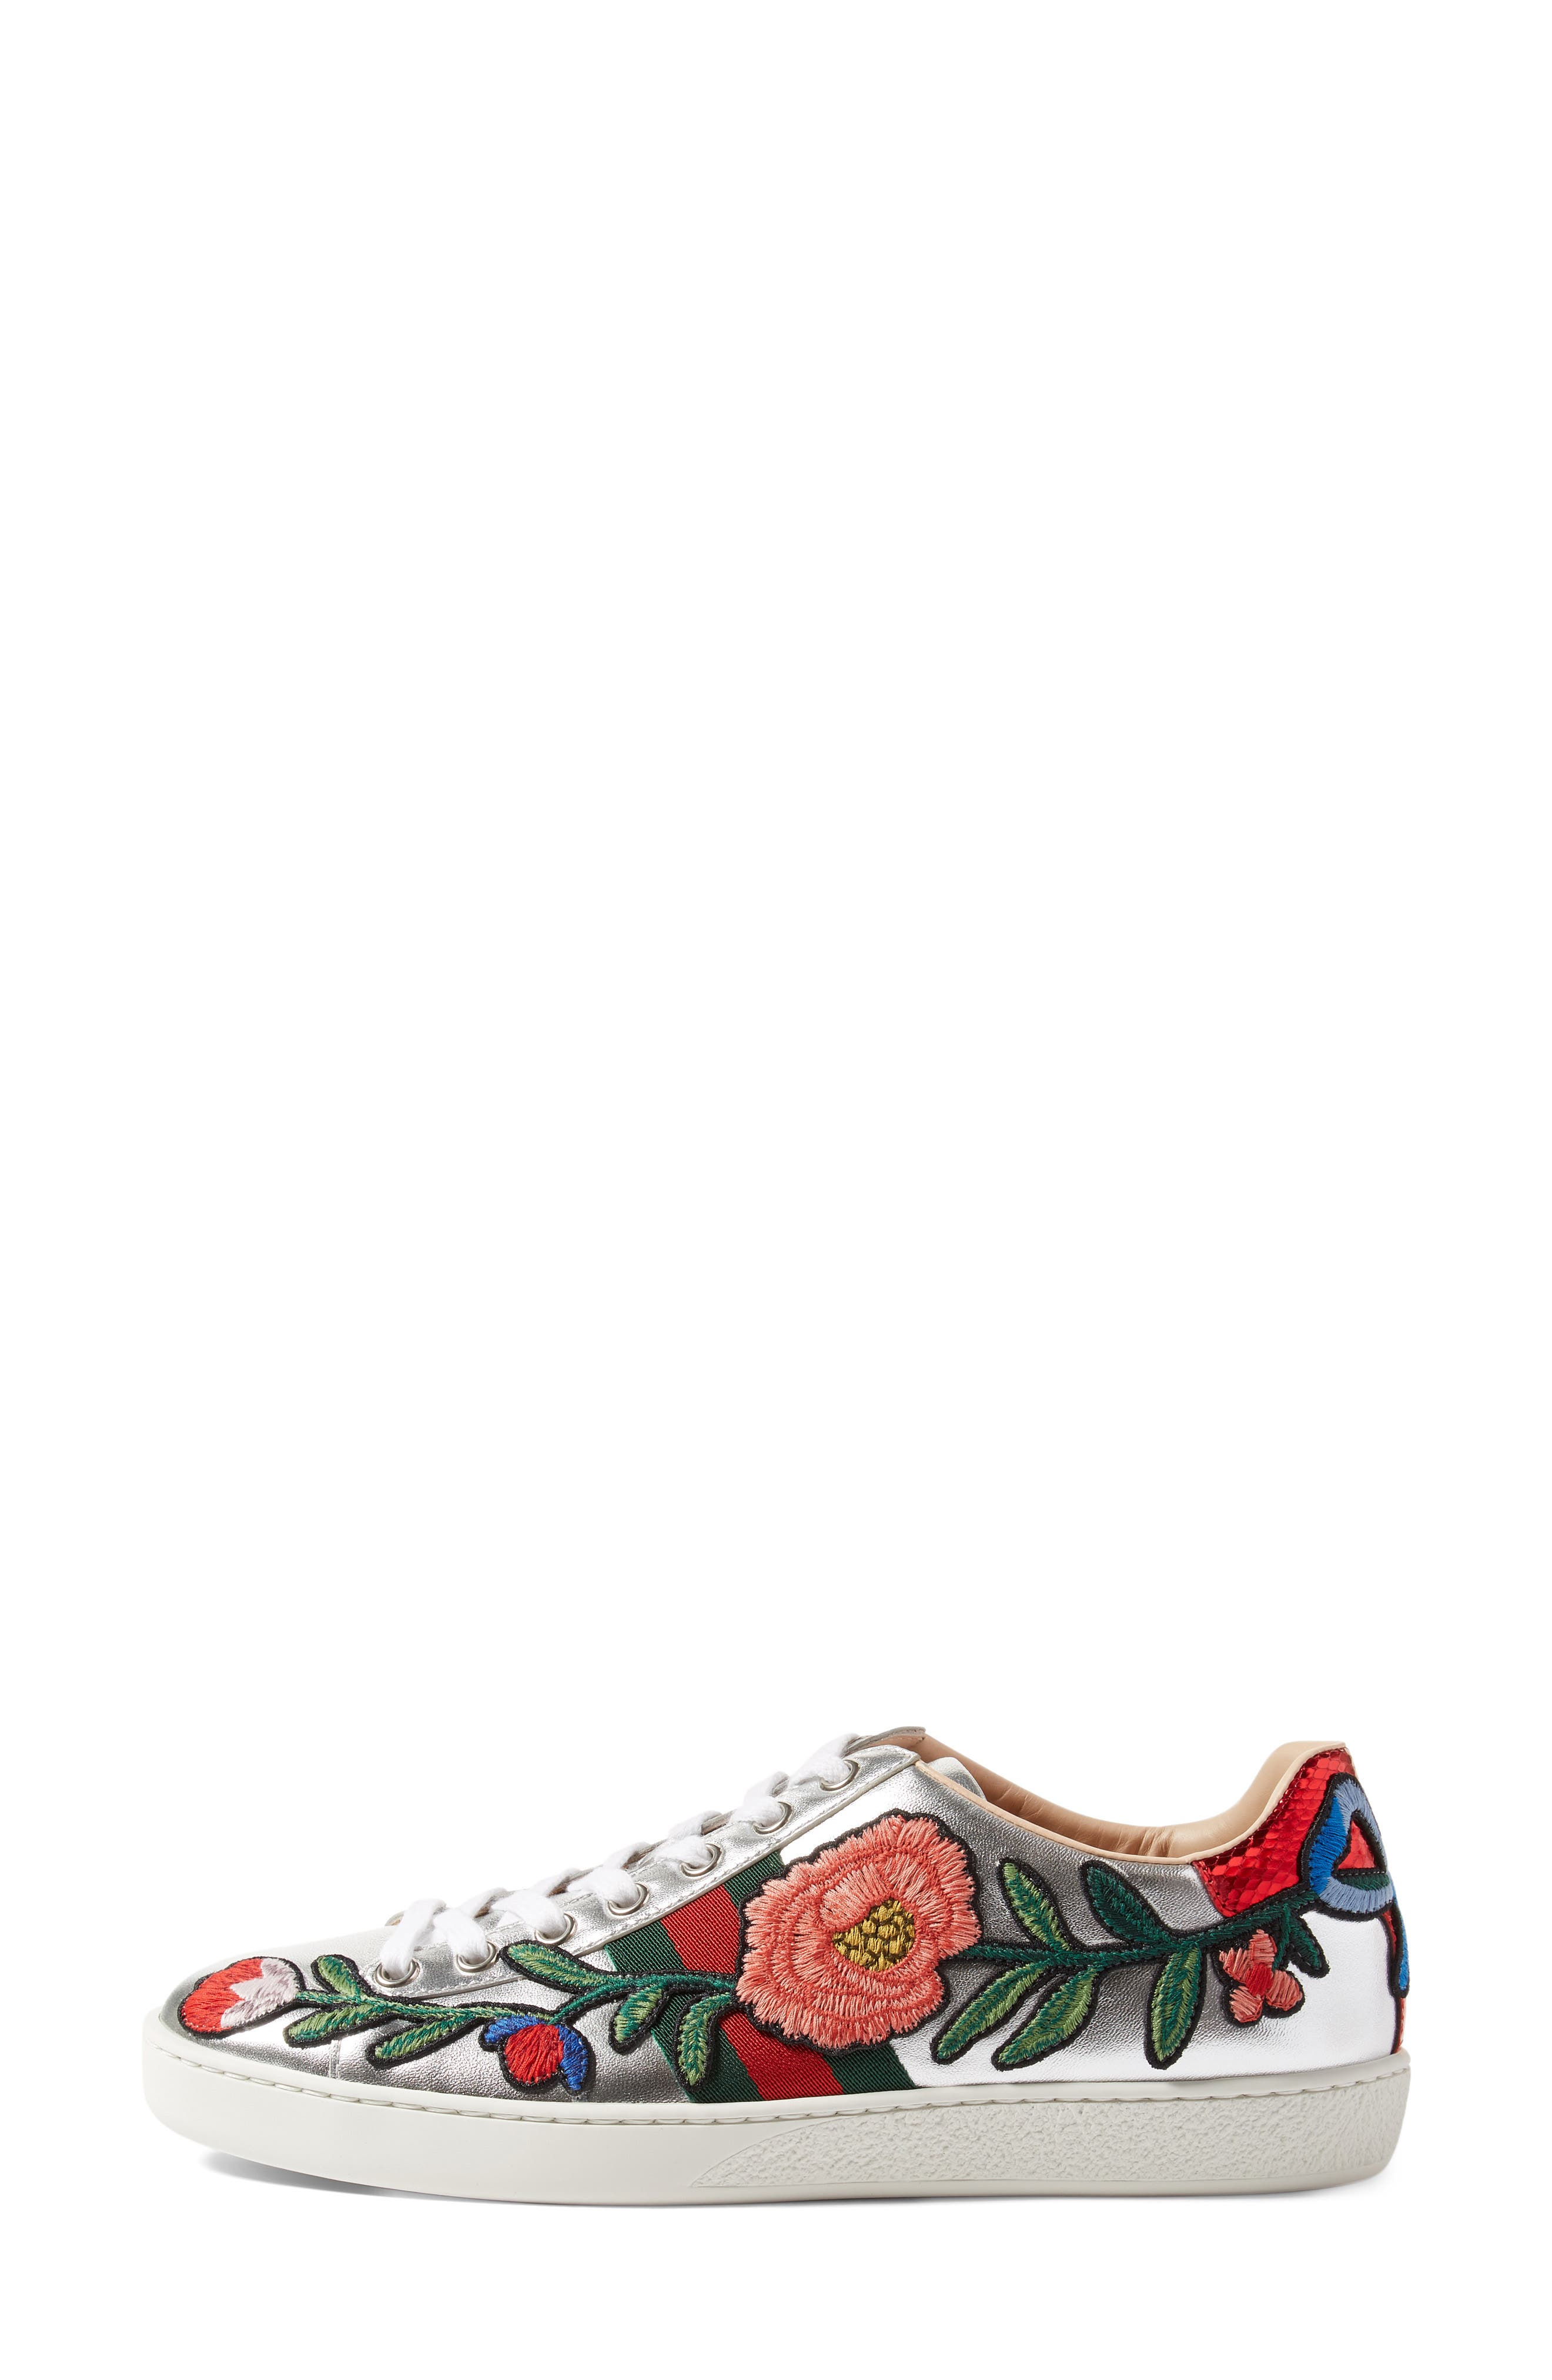 'New Ace' Low Top Sneaker,                             Alternate thumbnail 23, color,